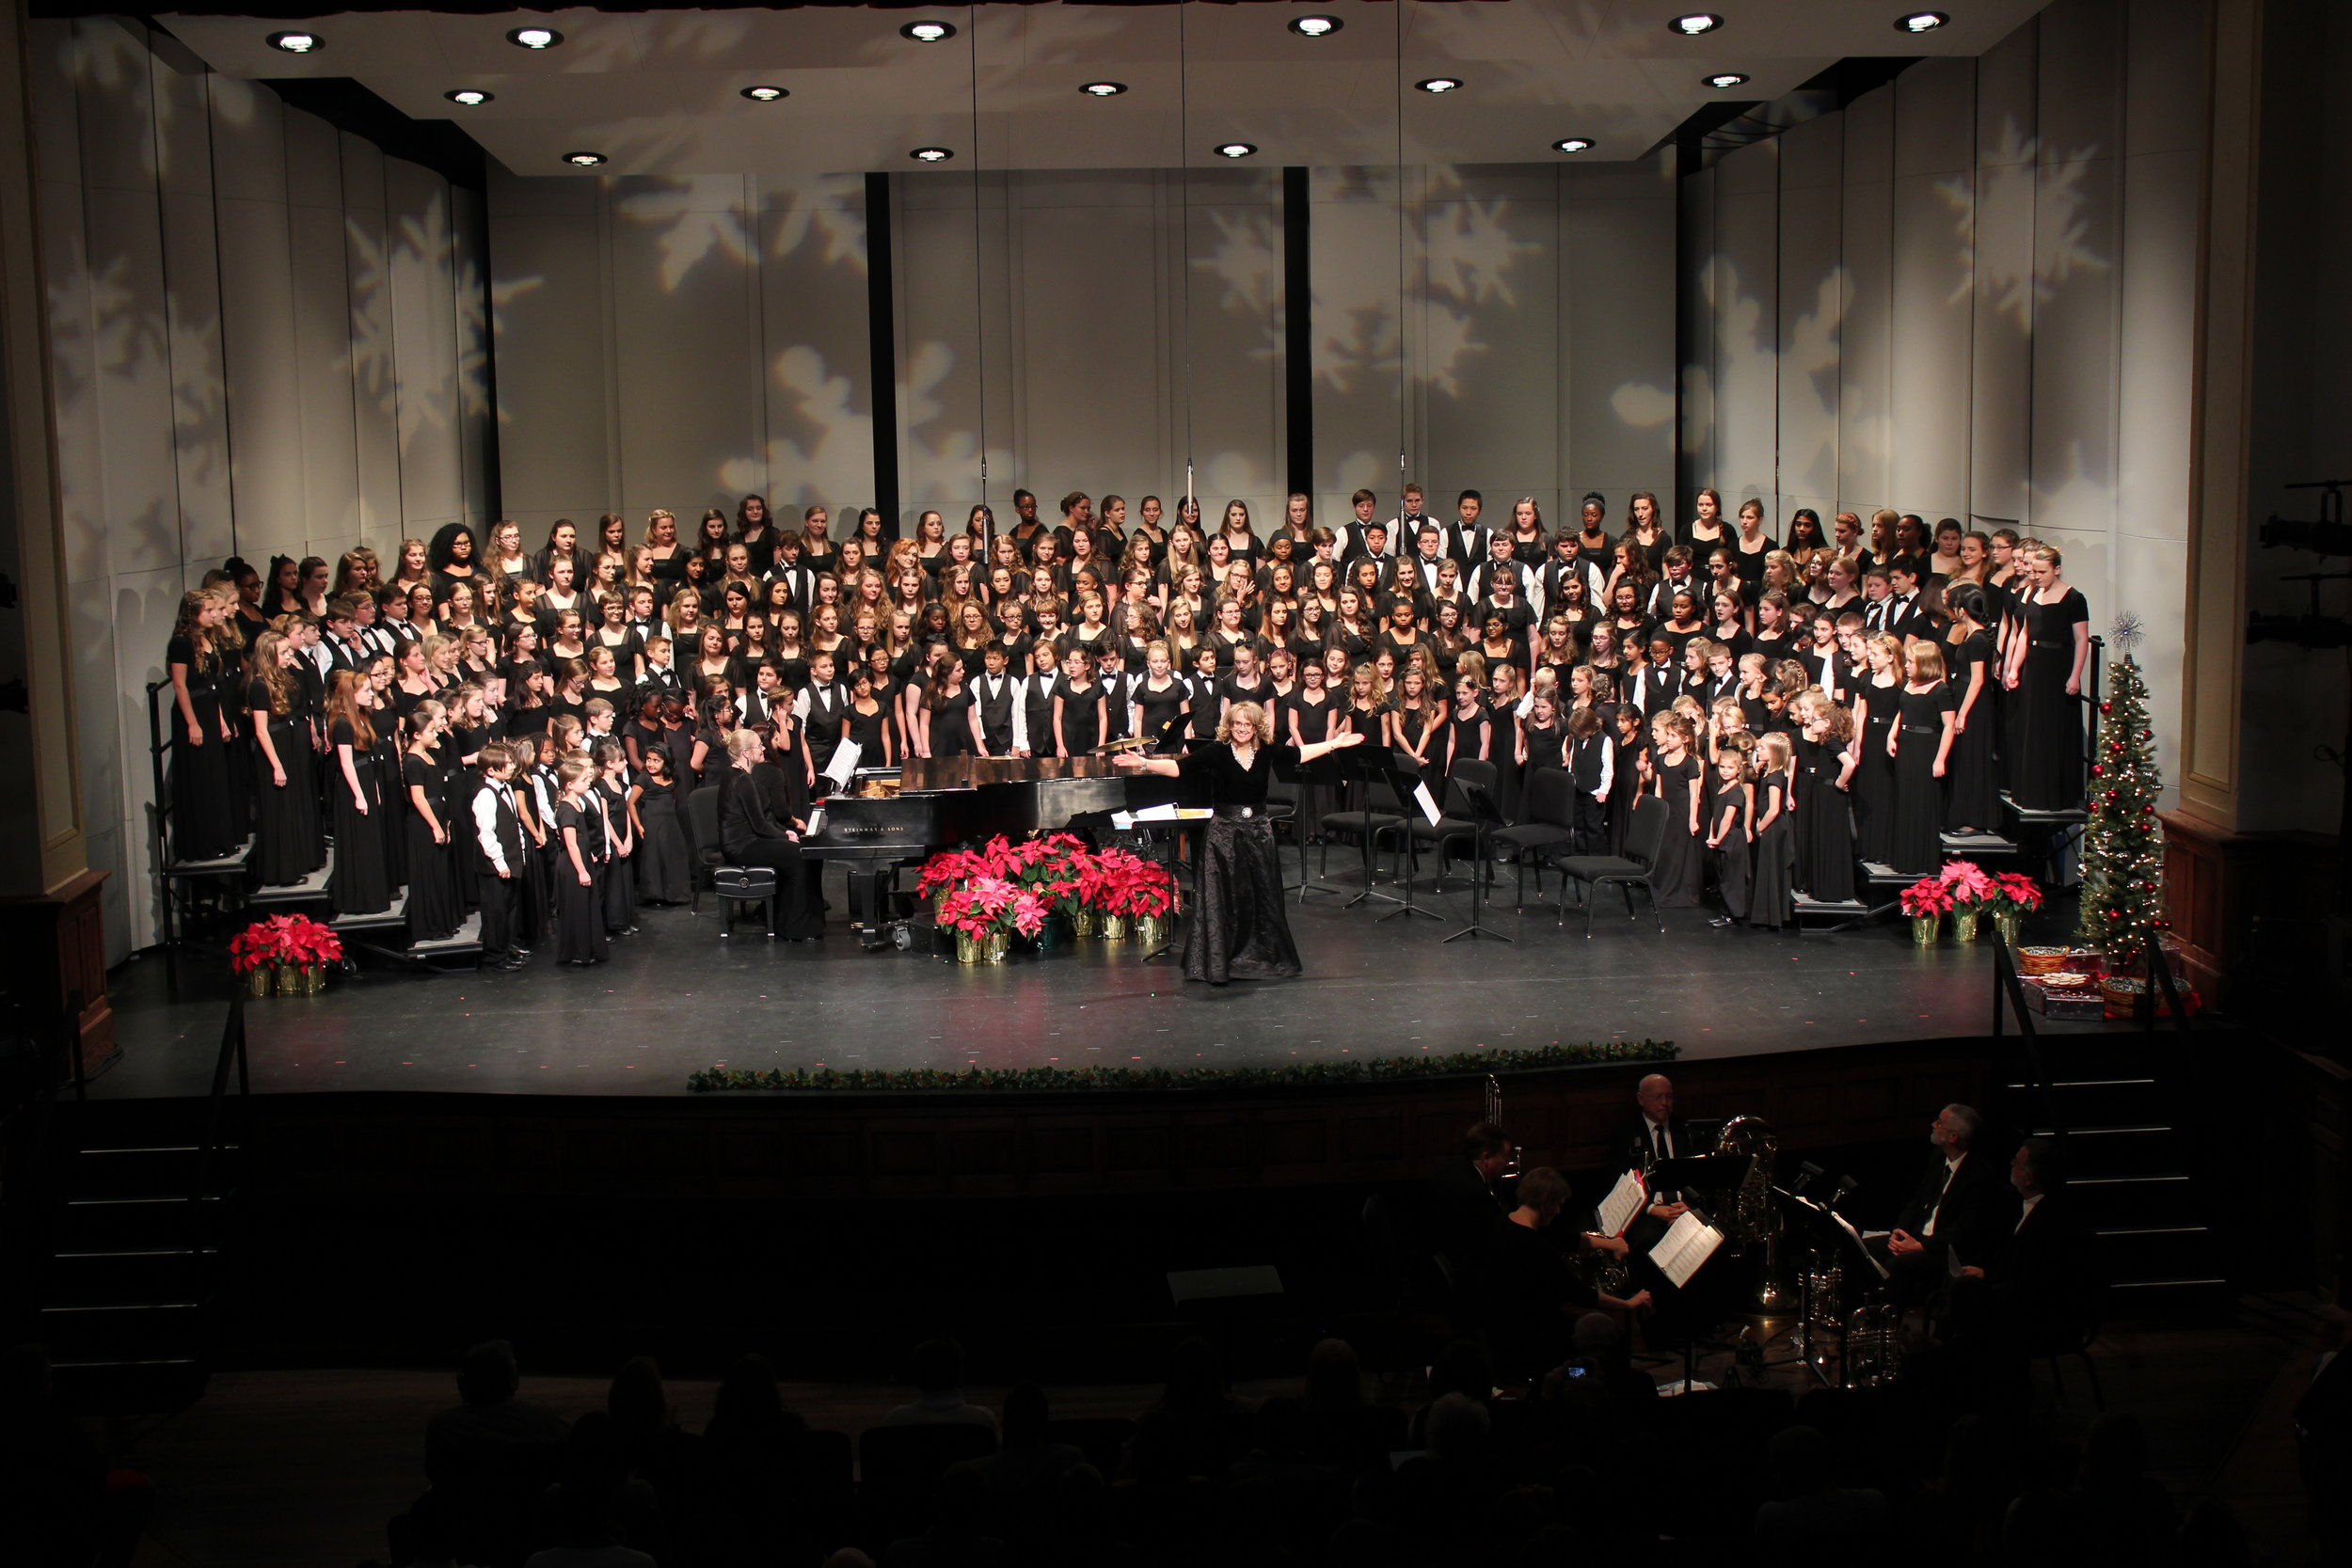 2017 RVCC Holiday Concert - The Roanoke Valley Children's Choir - 31st Annual Holiday Concert at The Jefferson Center in Roanoke, VA.